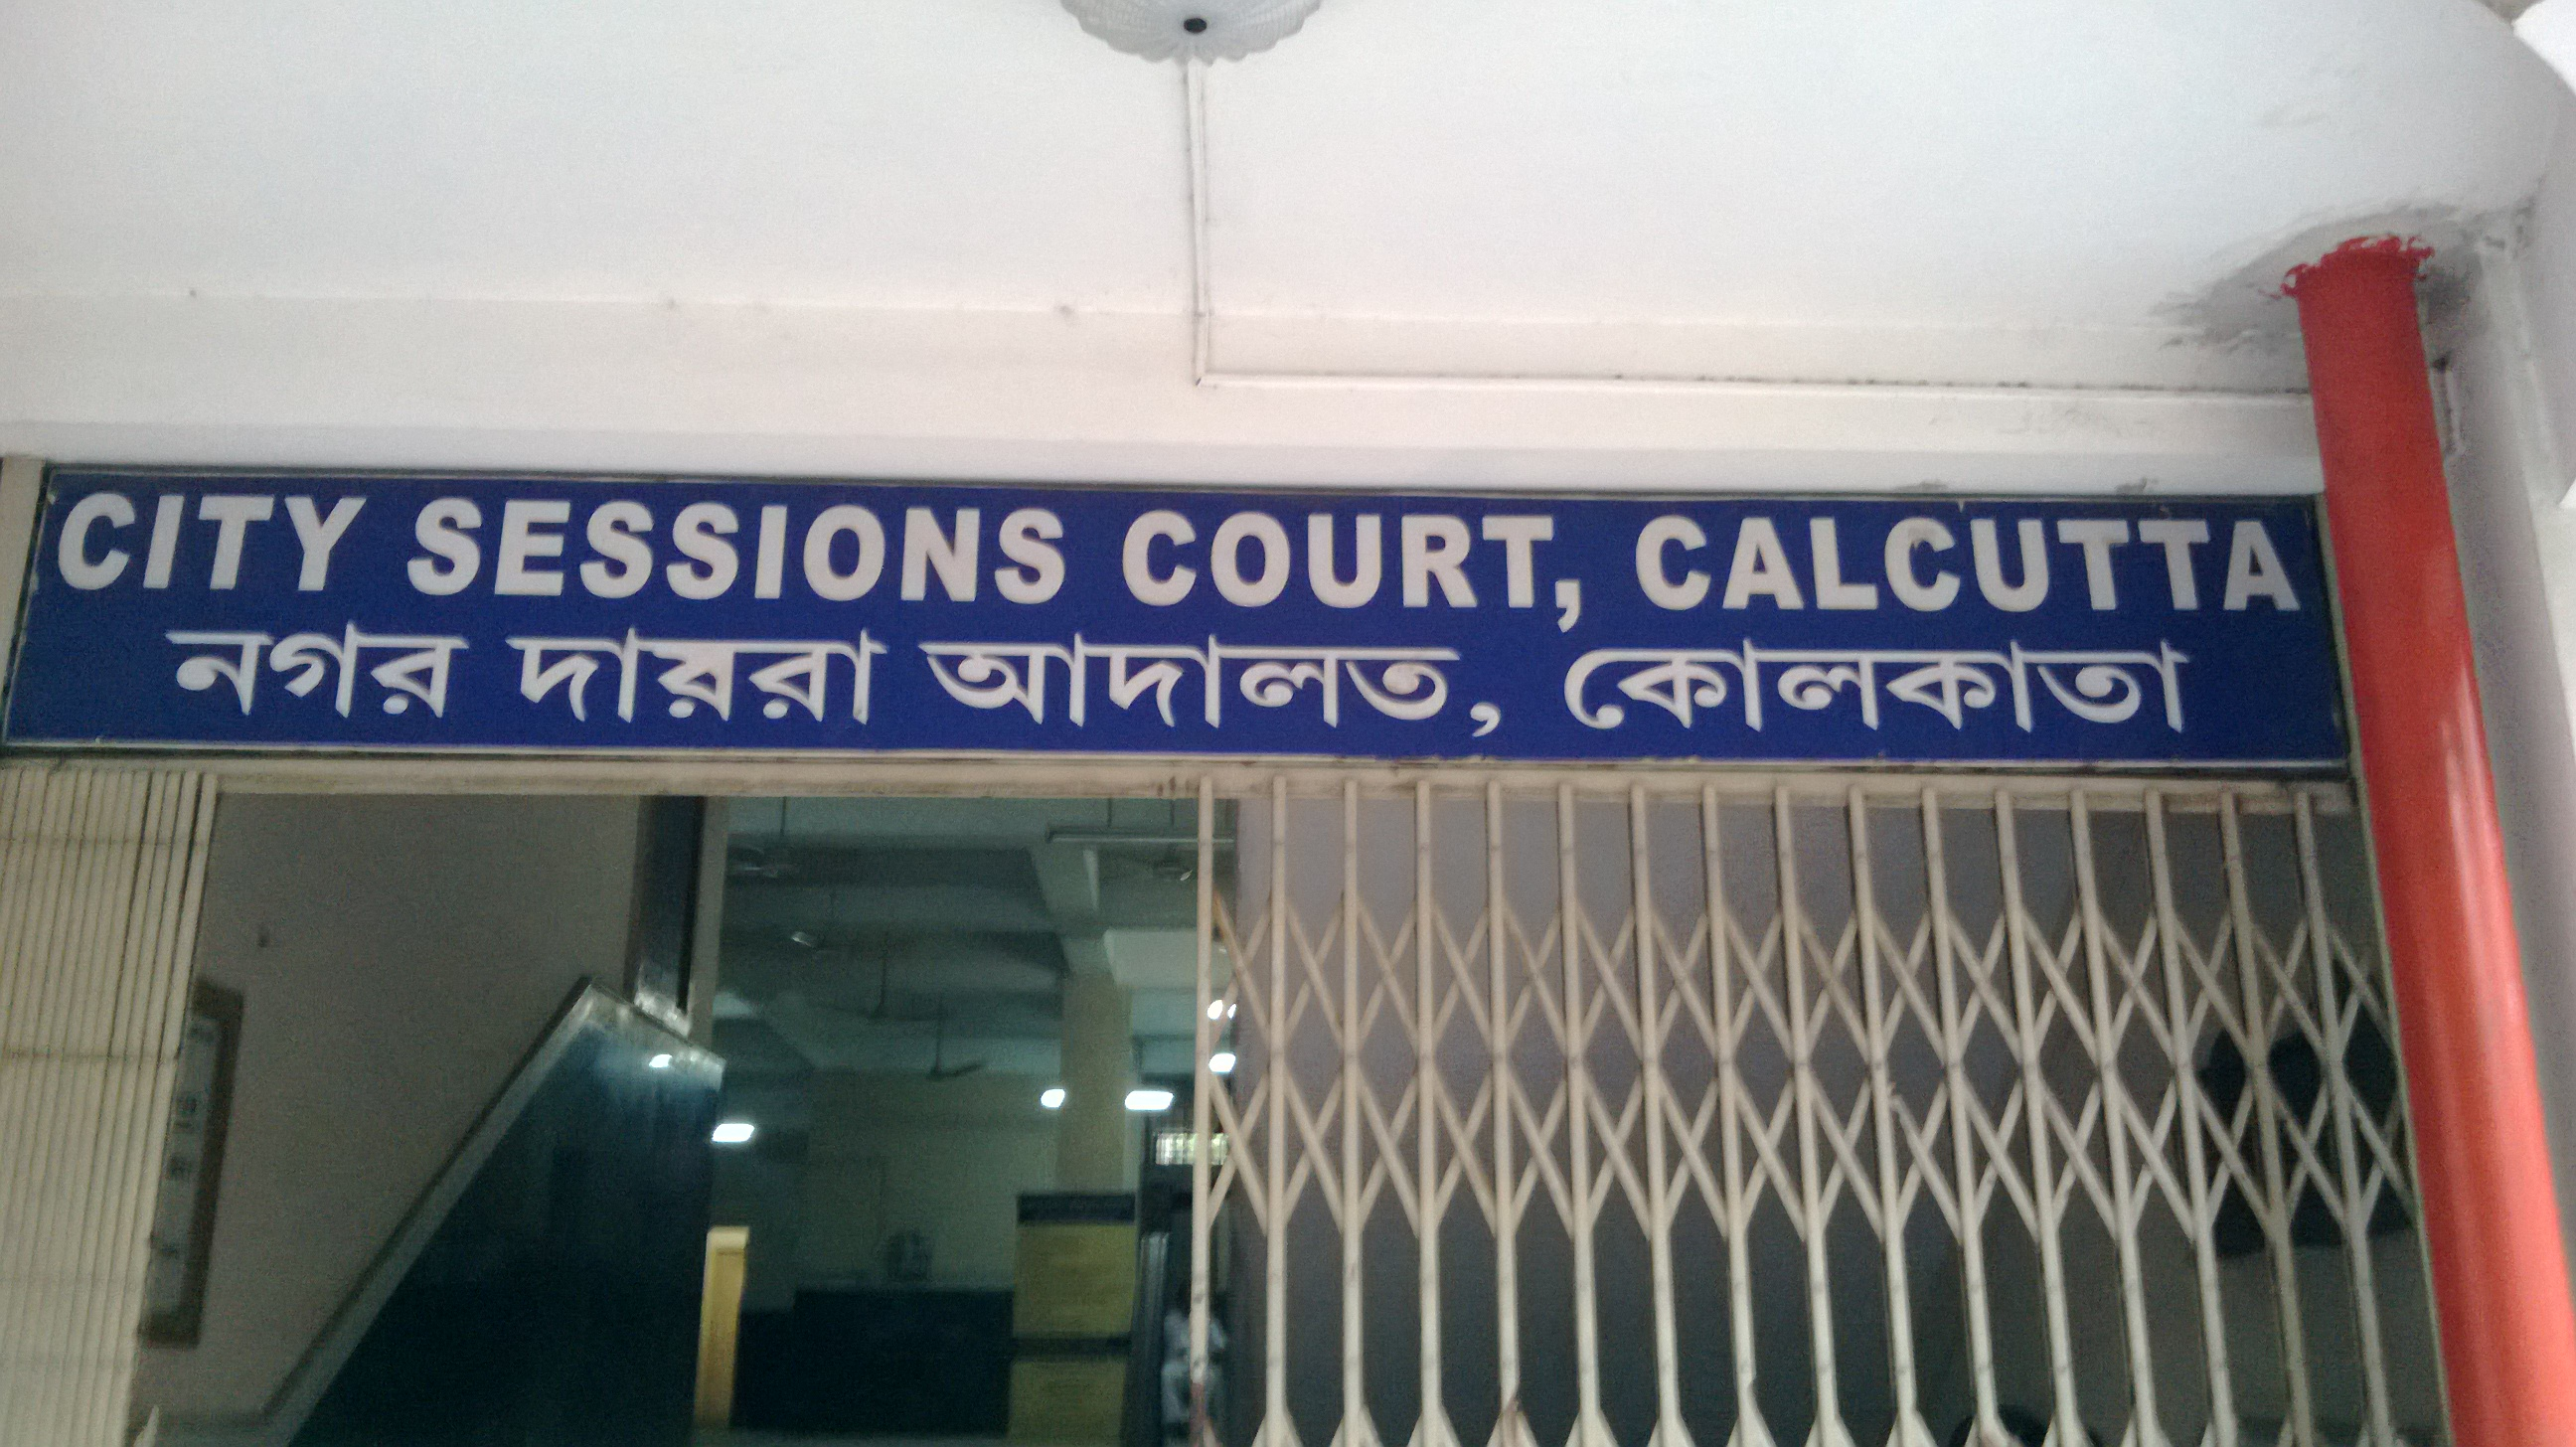 Kolkata-City Sessions Court/District Court in India